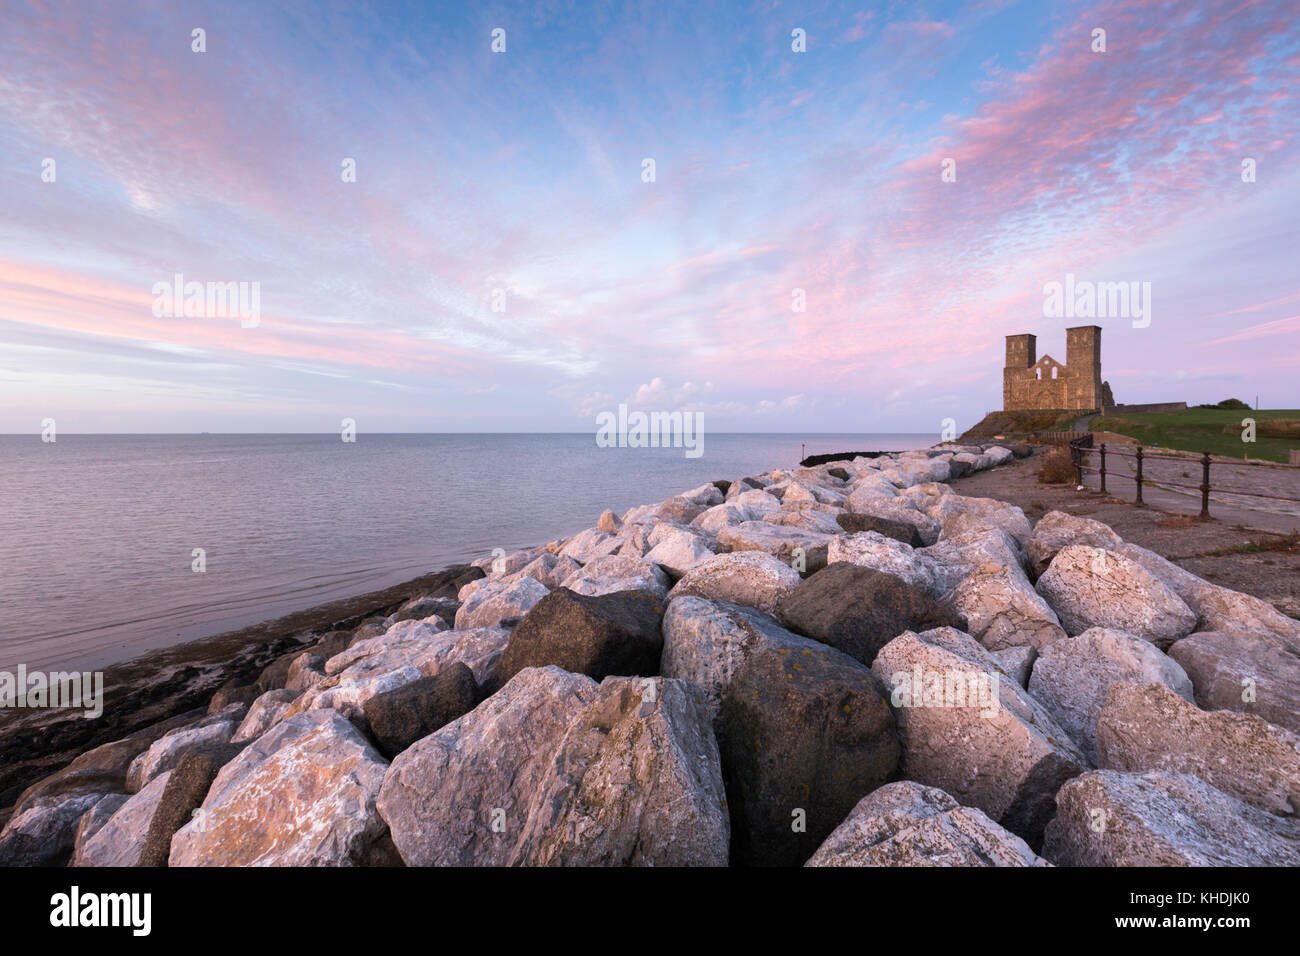 A vivid pink sunset at Reculver Towers, the Medieval church at Reculver on the north Kent coast, UK. The rocks in Stock Photo